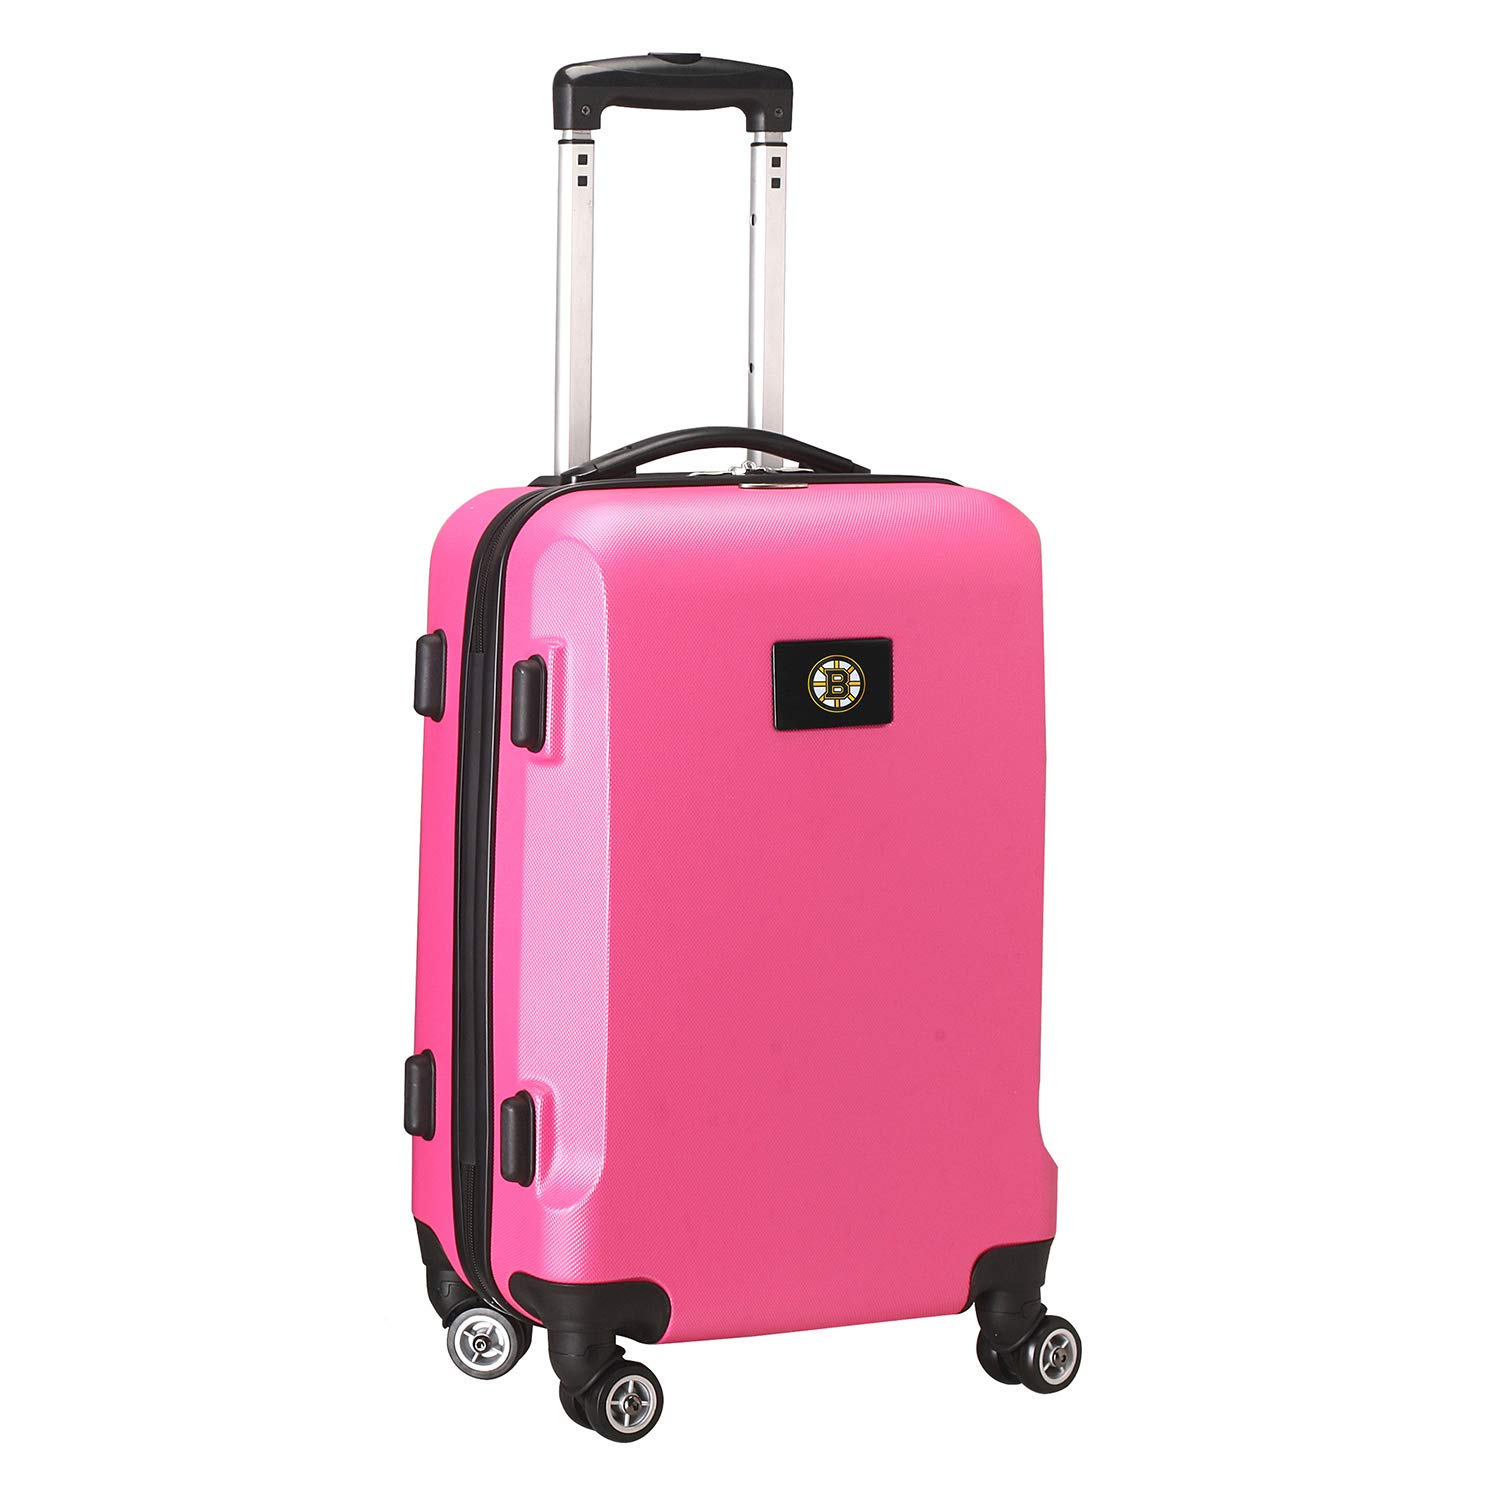 Denco NHL Boston Bruins Carry-On Hardcase Luggage Spinner, Pink